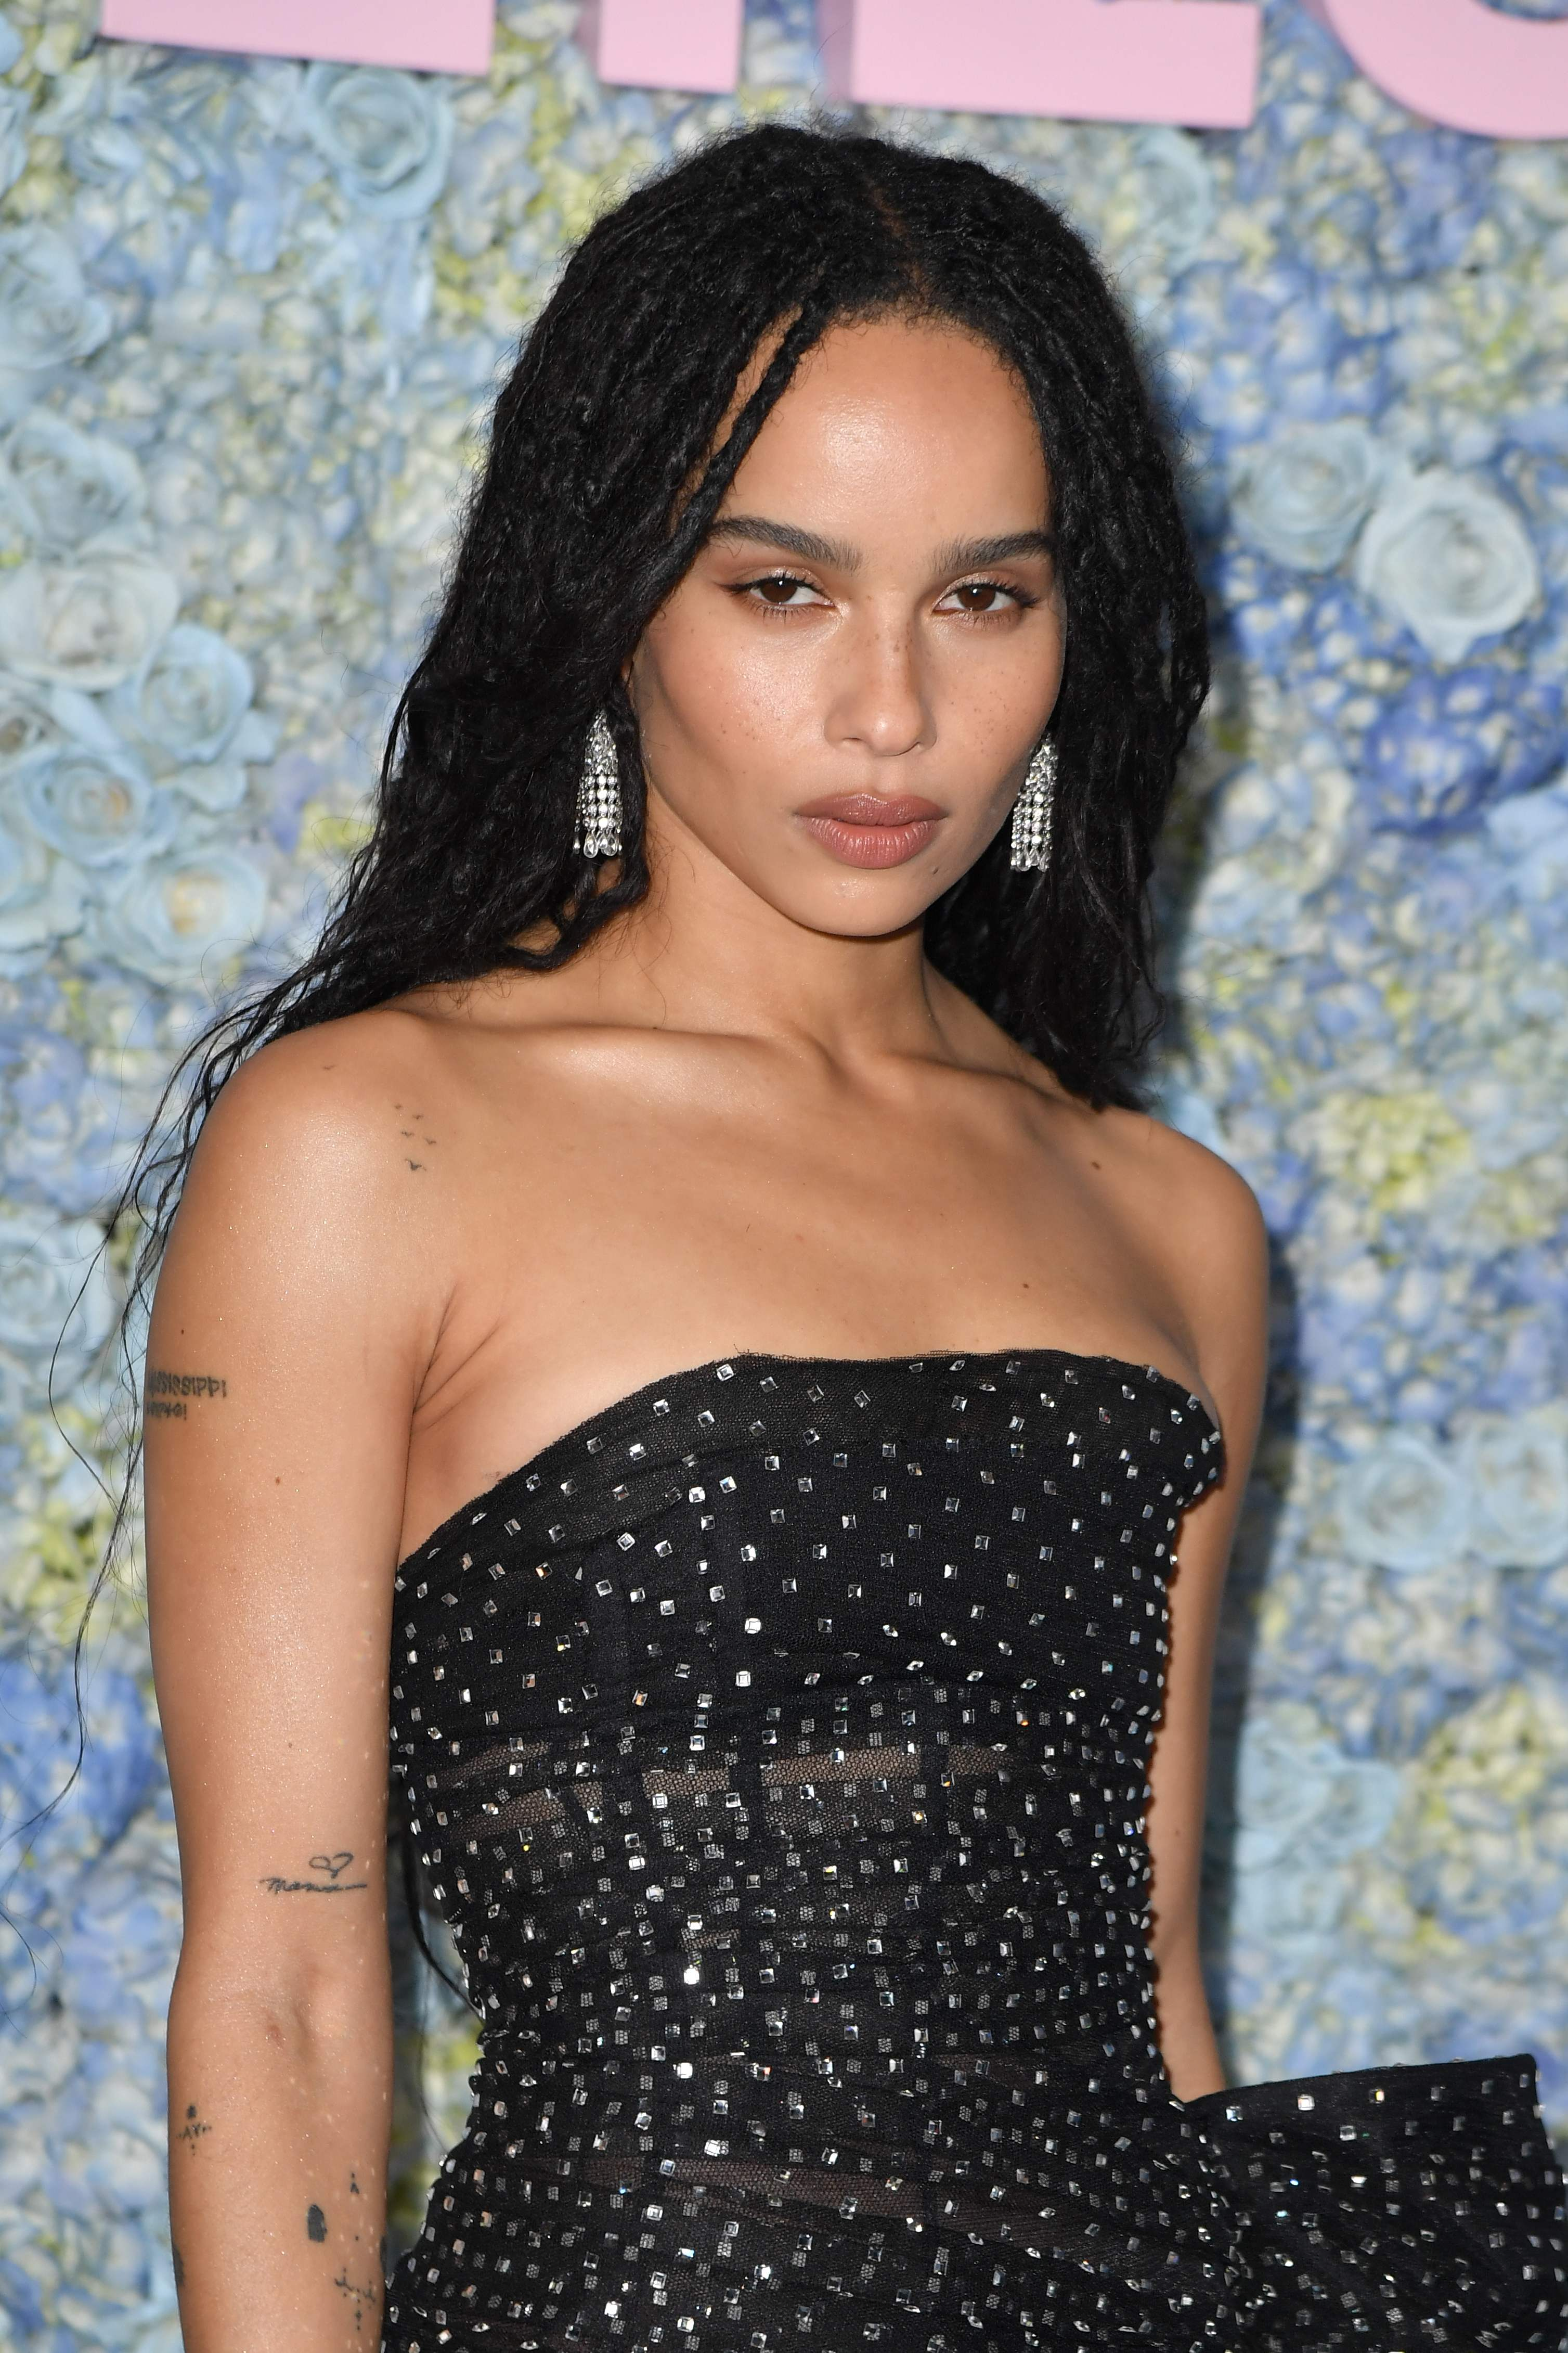 Zoe Kravitz as Catwoman: Jason Momoa stoked for role; Anne Hathaway, Michelle Pfeiffer react